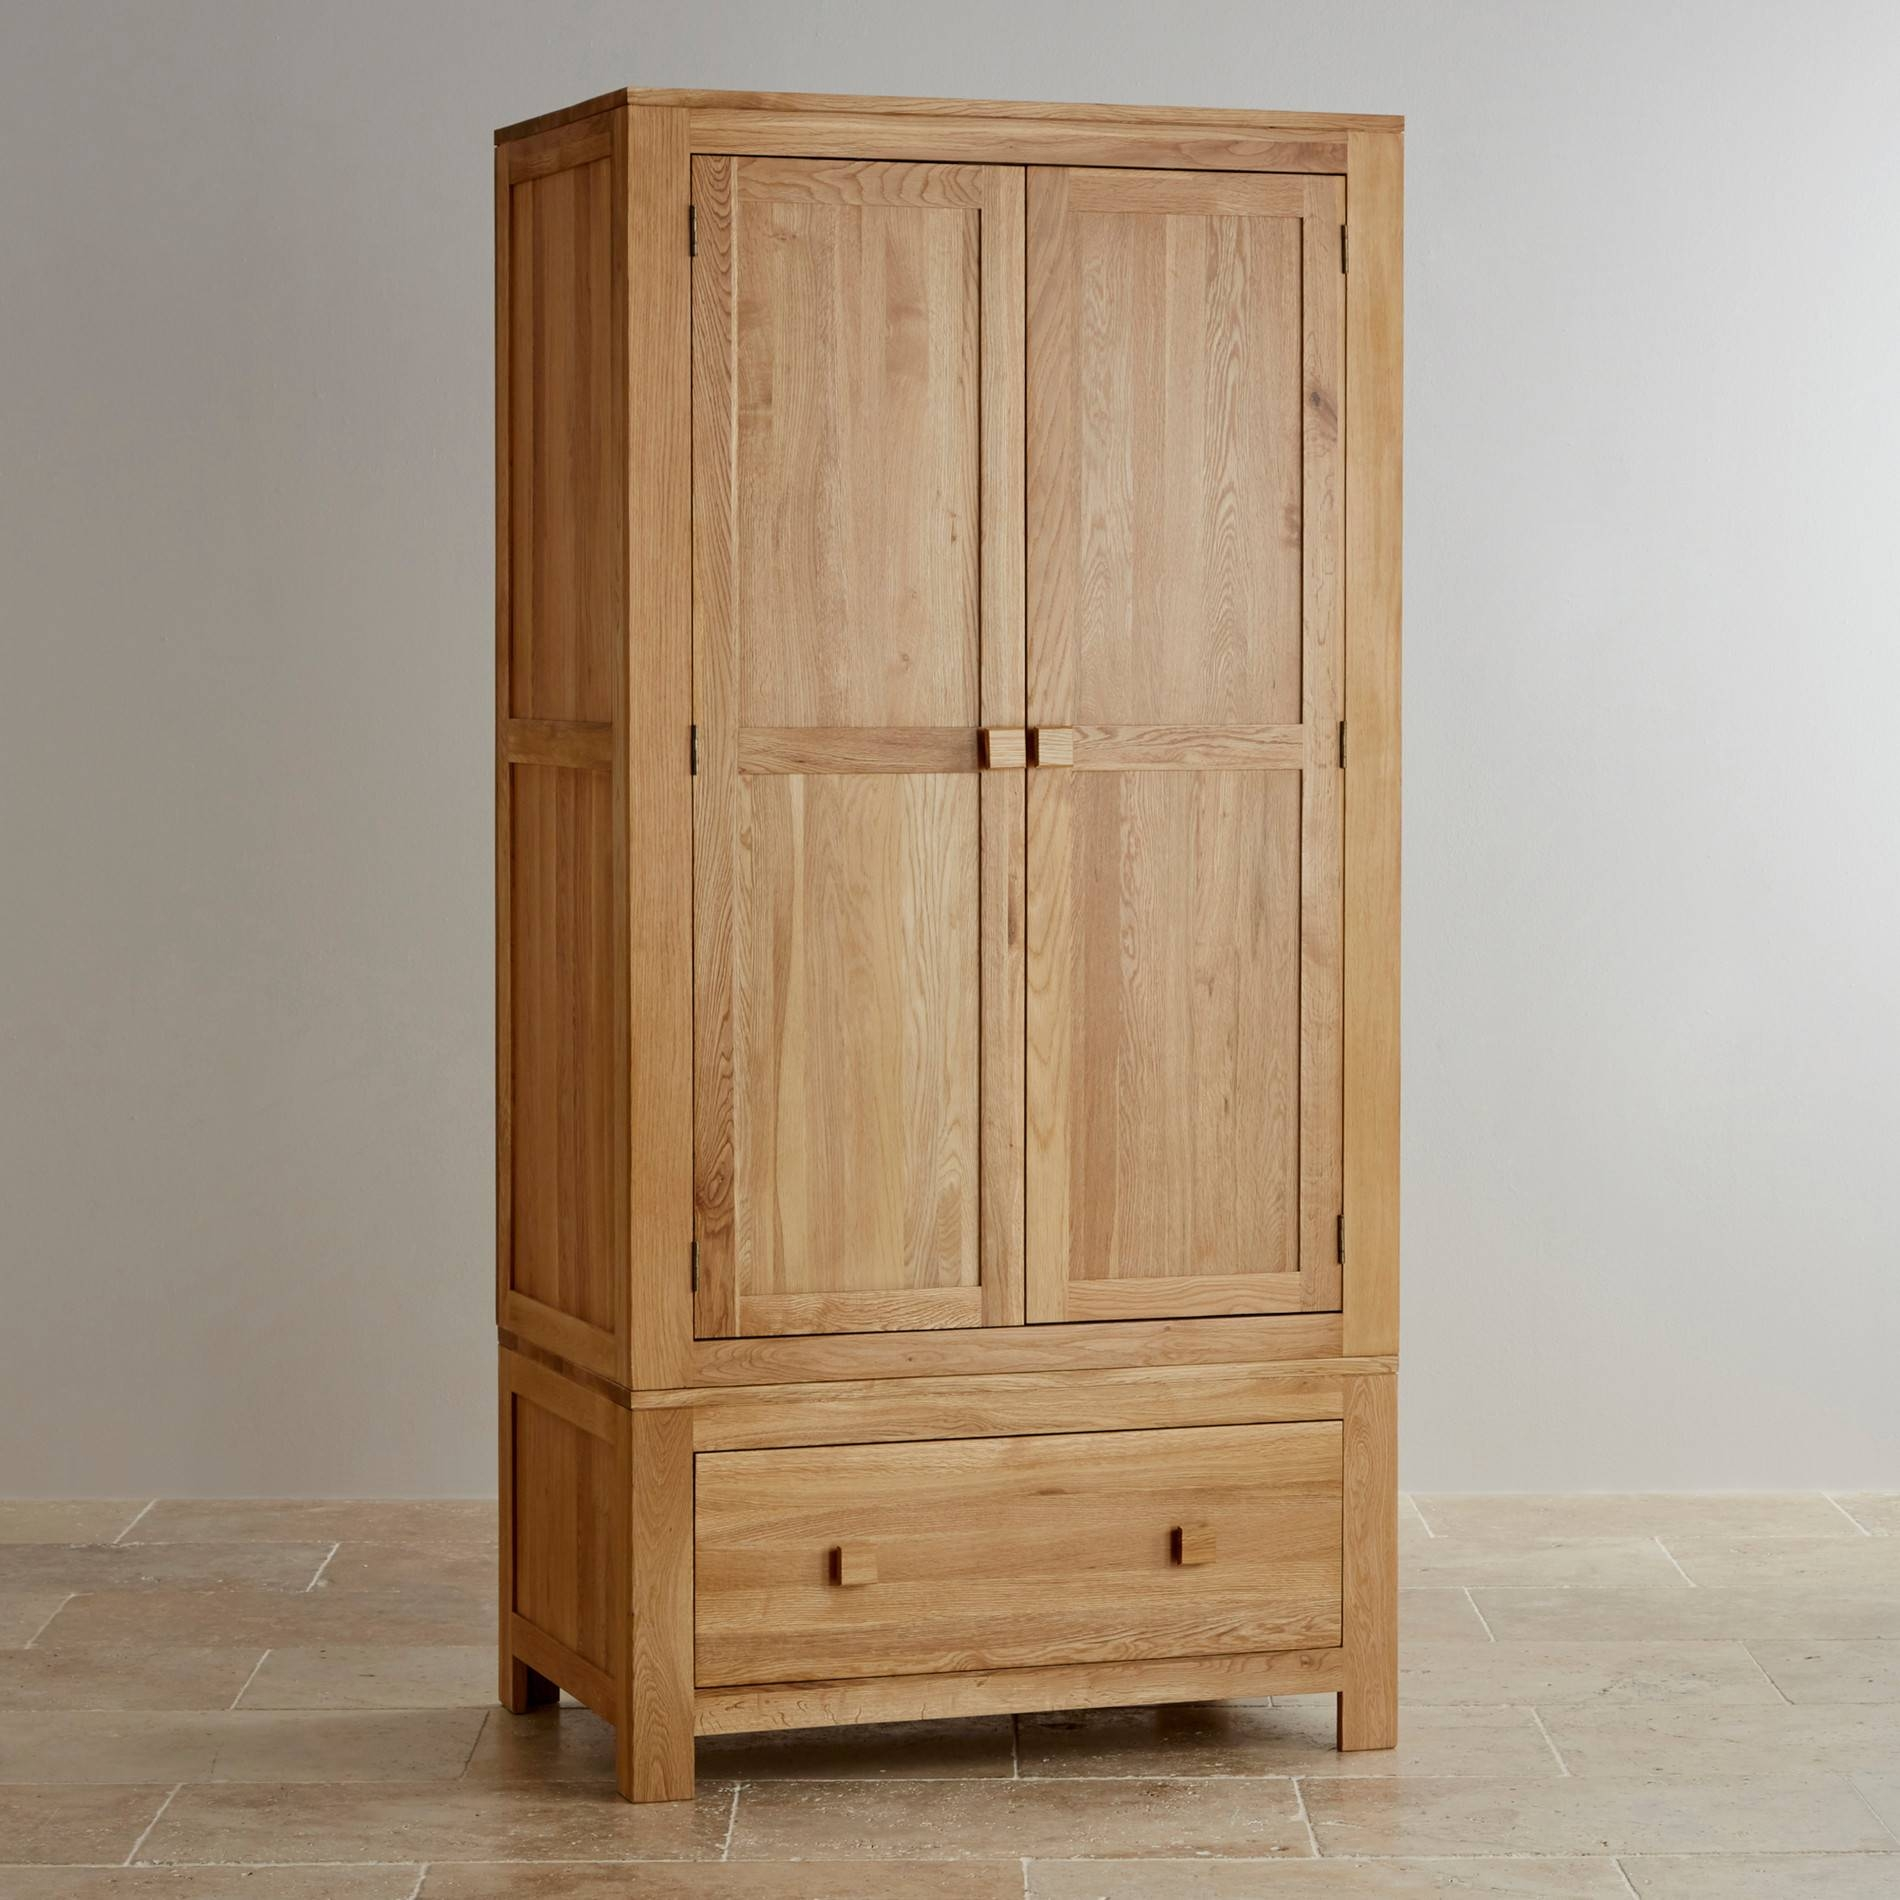 Oakdale Natural Solid Oak Double Wardrobe | Bedroom Furniture pertaining to Cheap Solid Wood Wardrobes (Image 7 of 15)